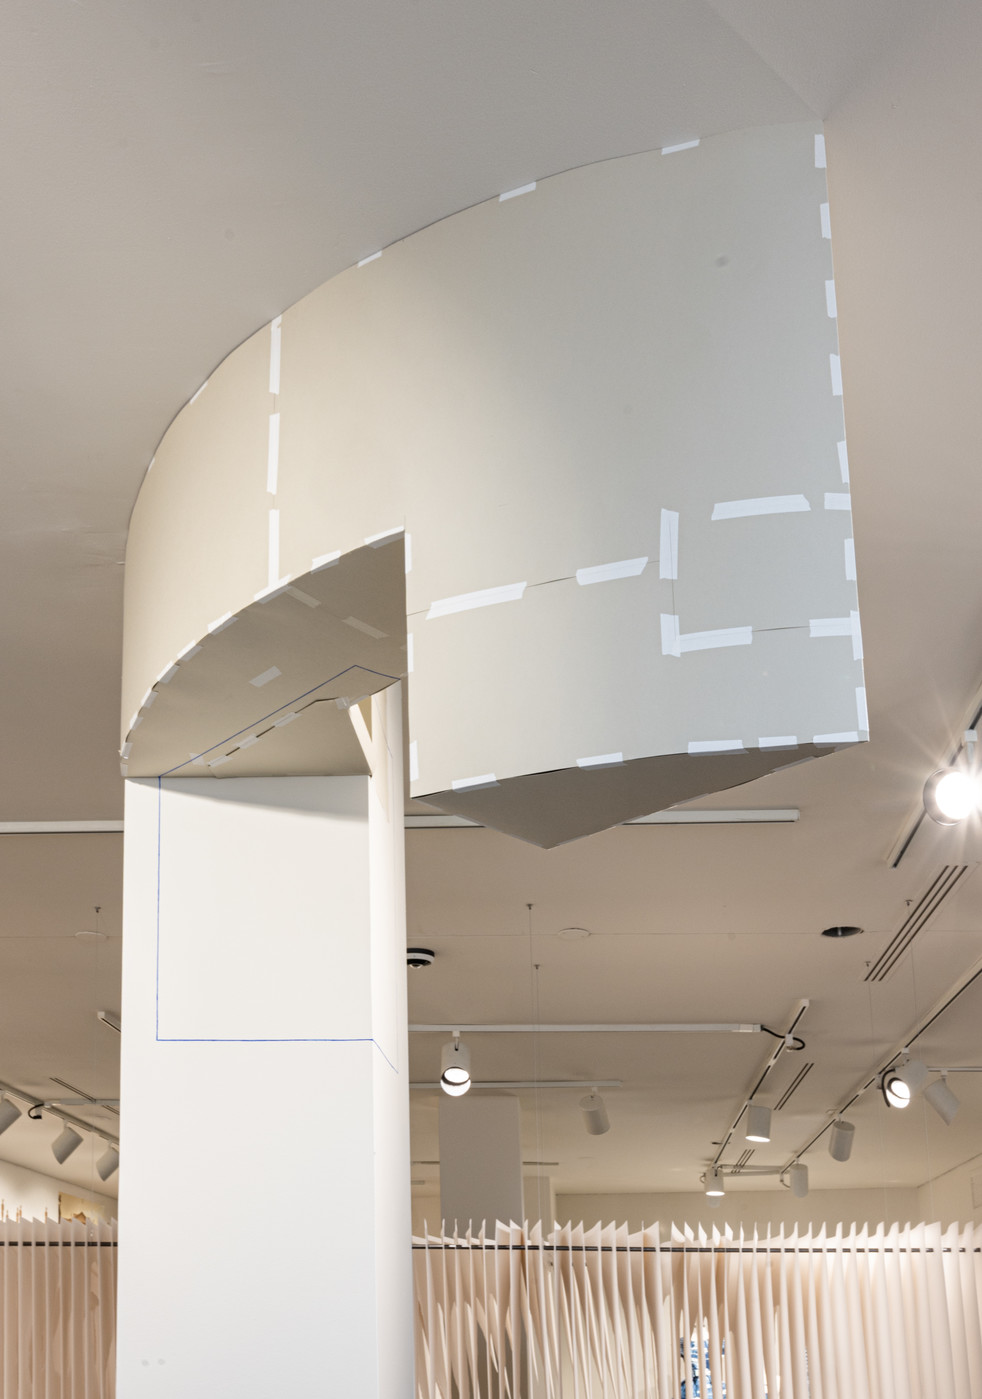 Beige paper geometric construction anchored to the ceiling and white square column